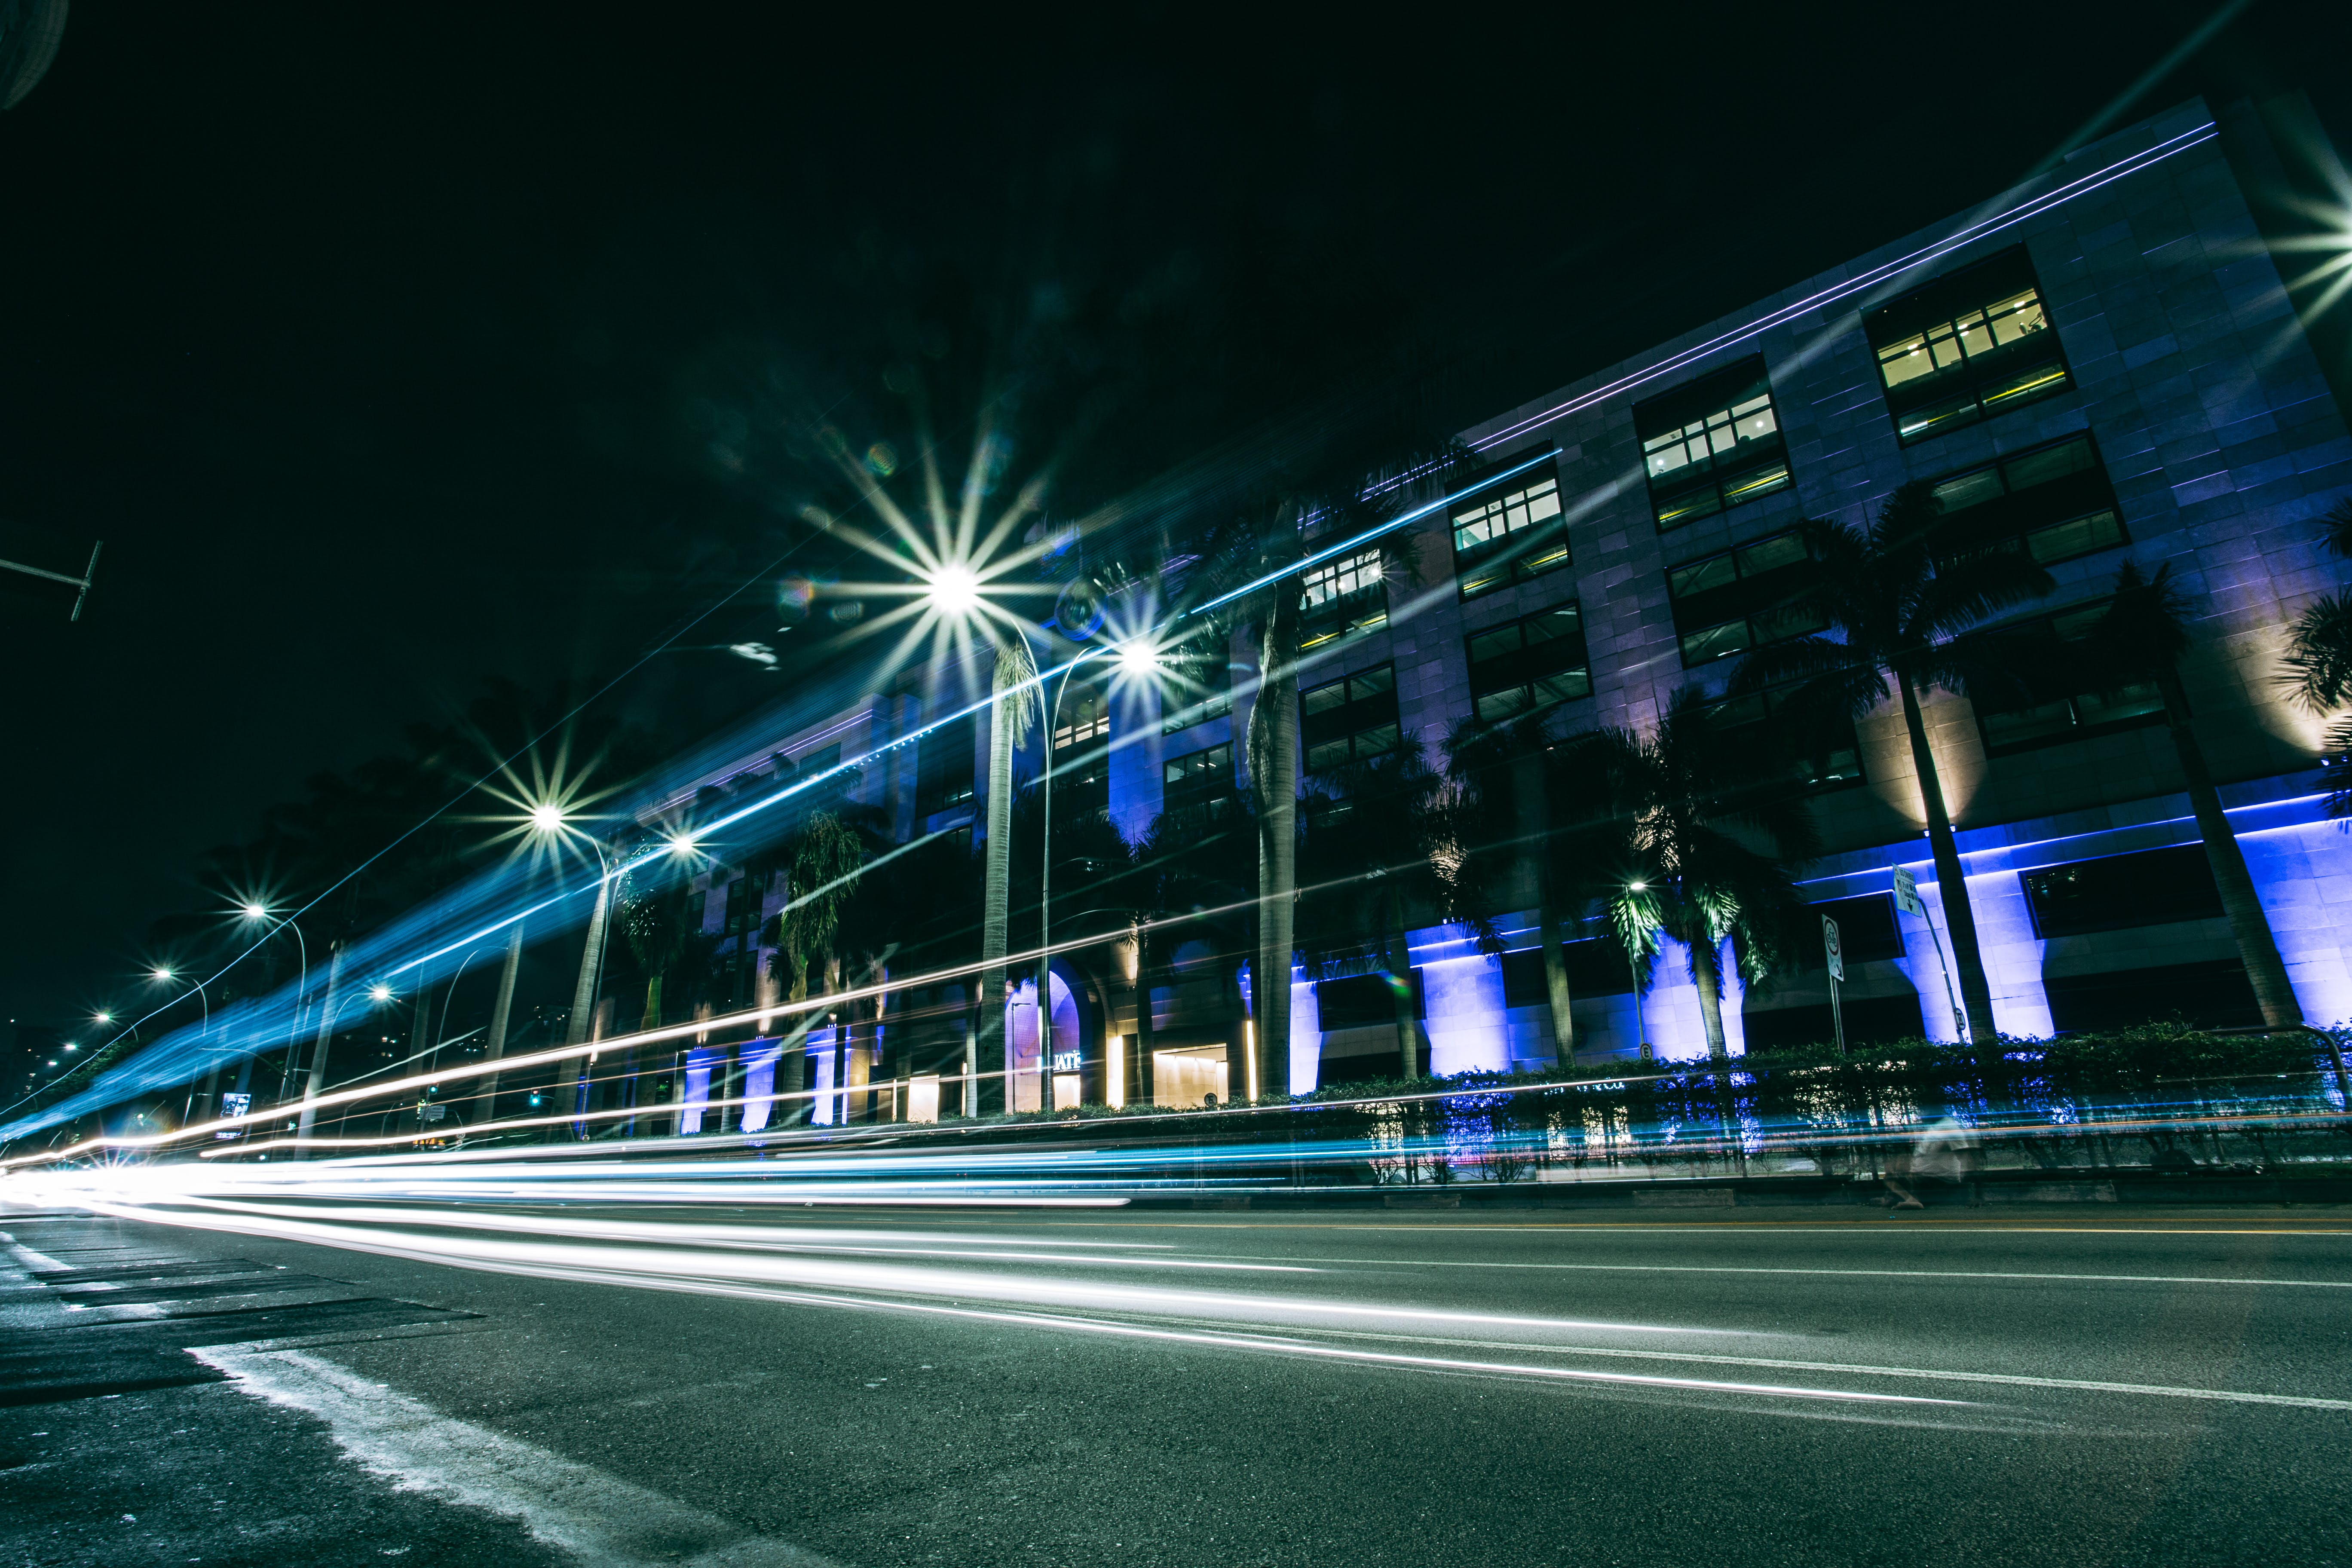 Time-lapse Photography of Road at Night